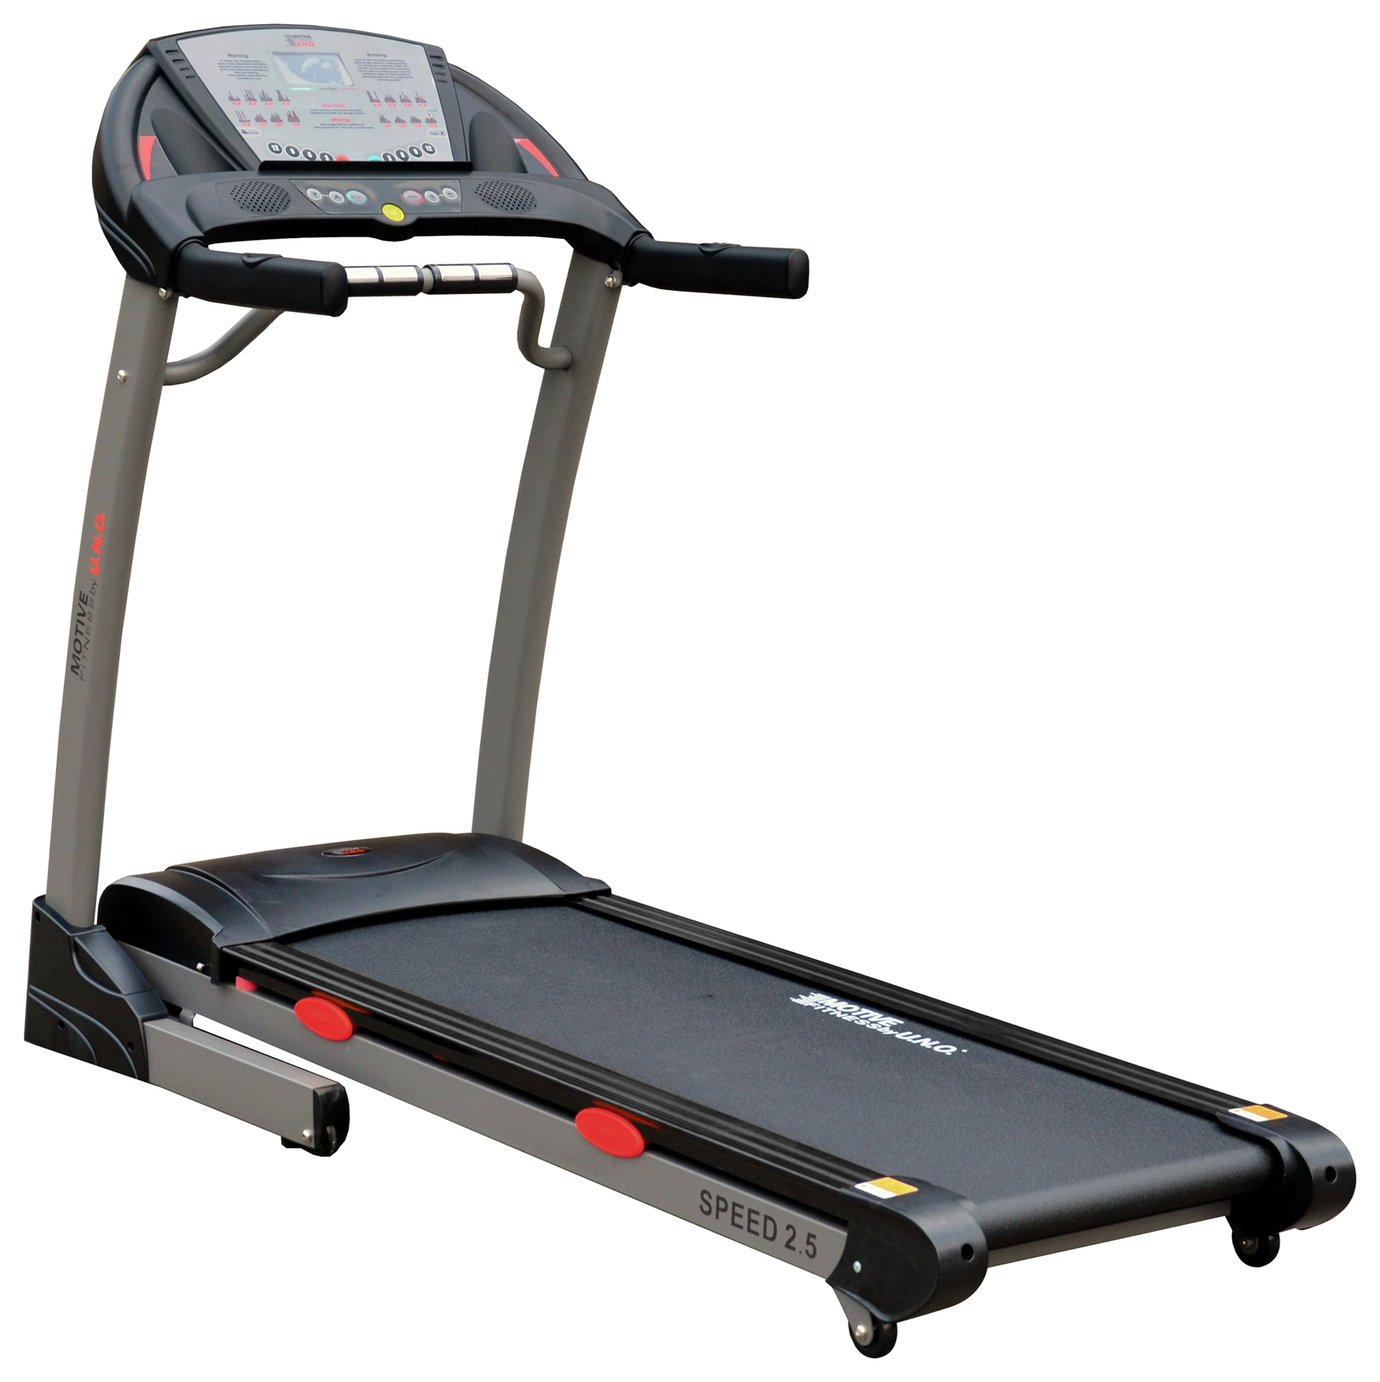 Motivefitness by Uno Speed 2.5 Treadmill